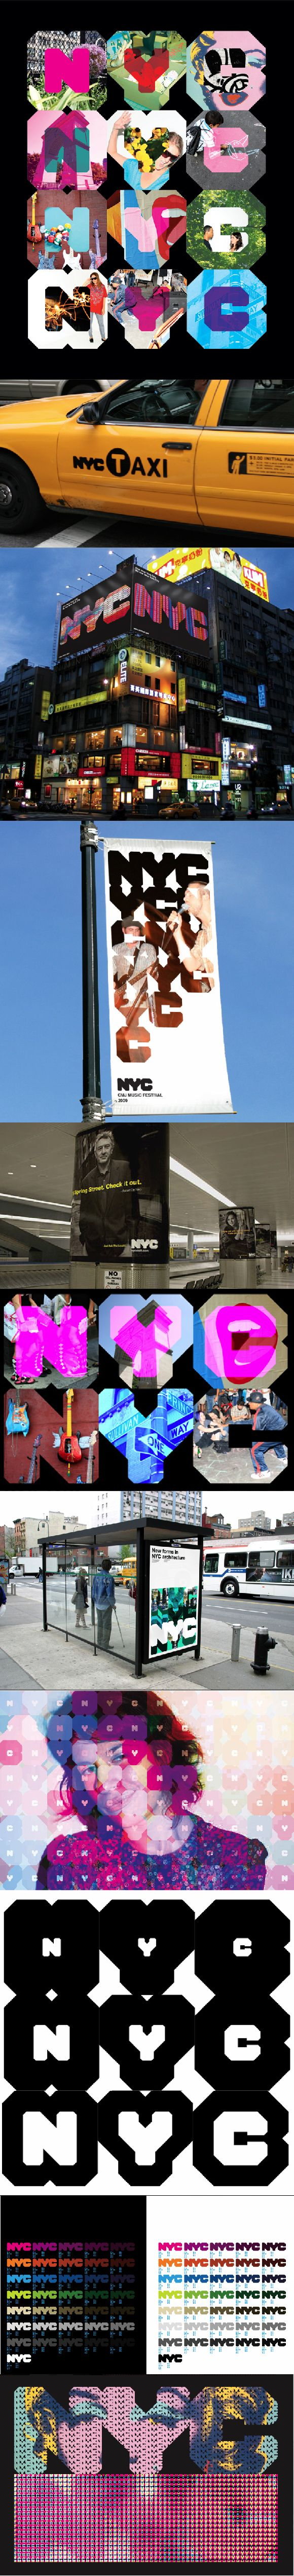 Branding for the New York City, USA, by Wolff Olins. Бренд Нью-Йорка, США, агентство Wolff Olins. #city_brand 2007